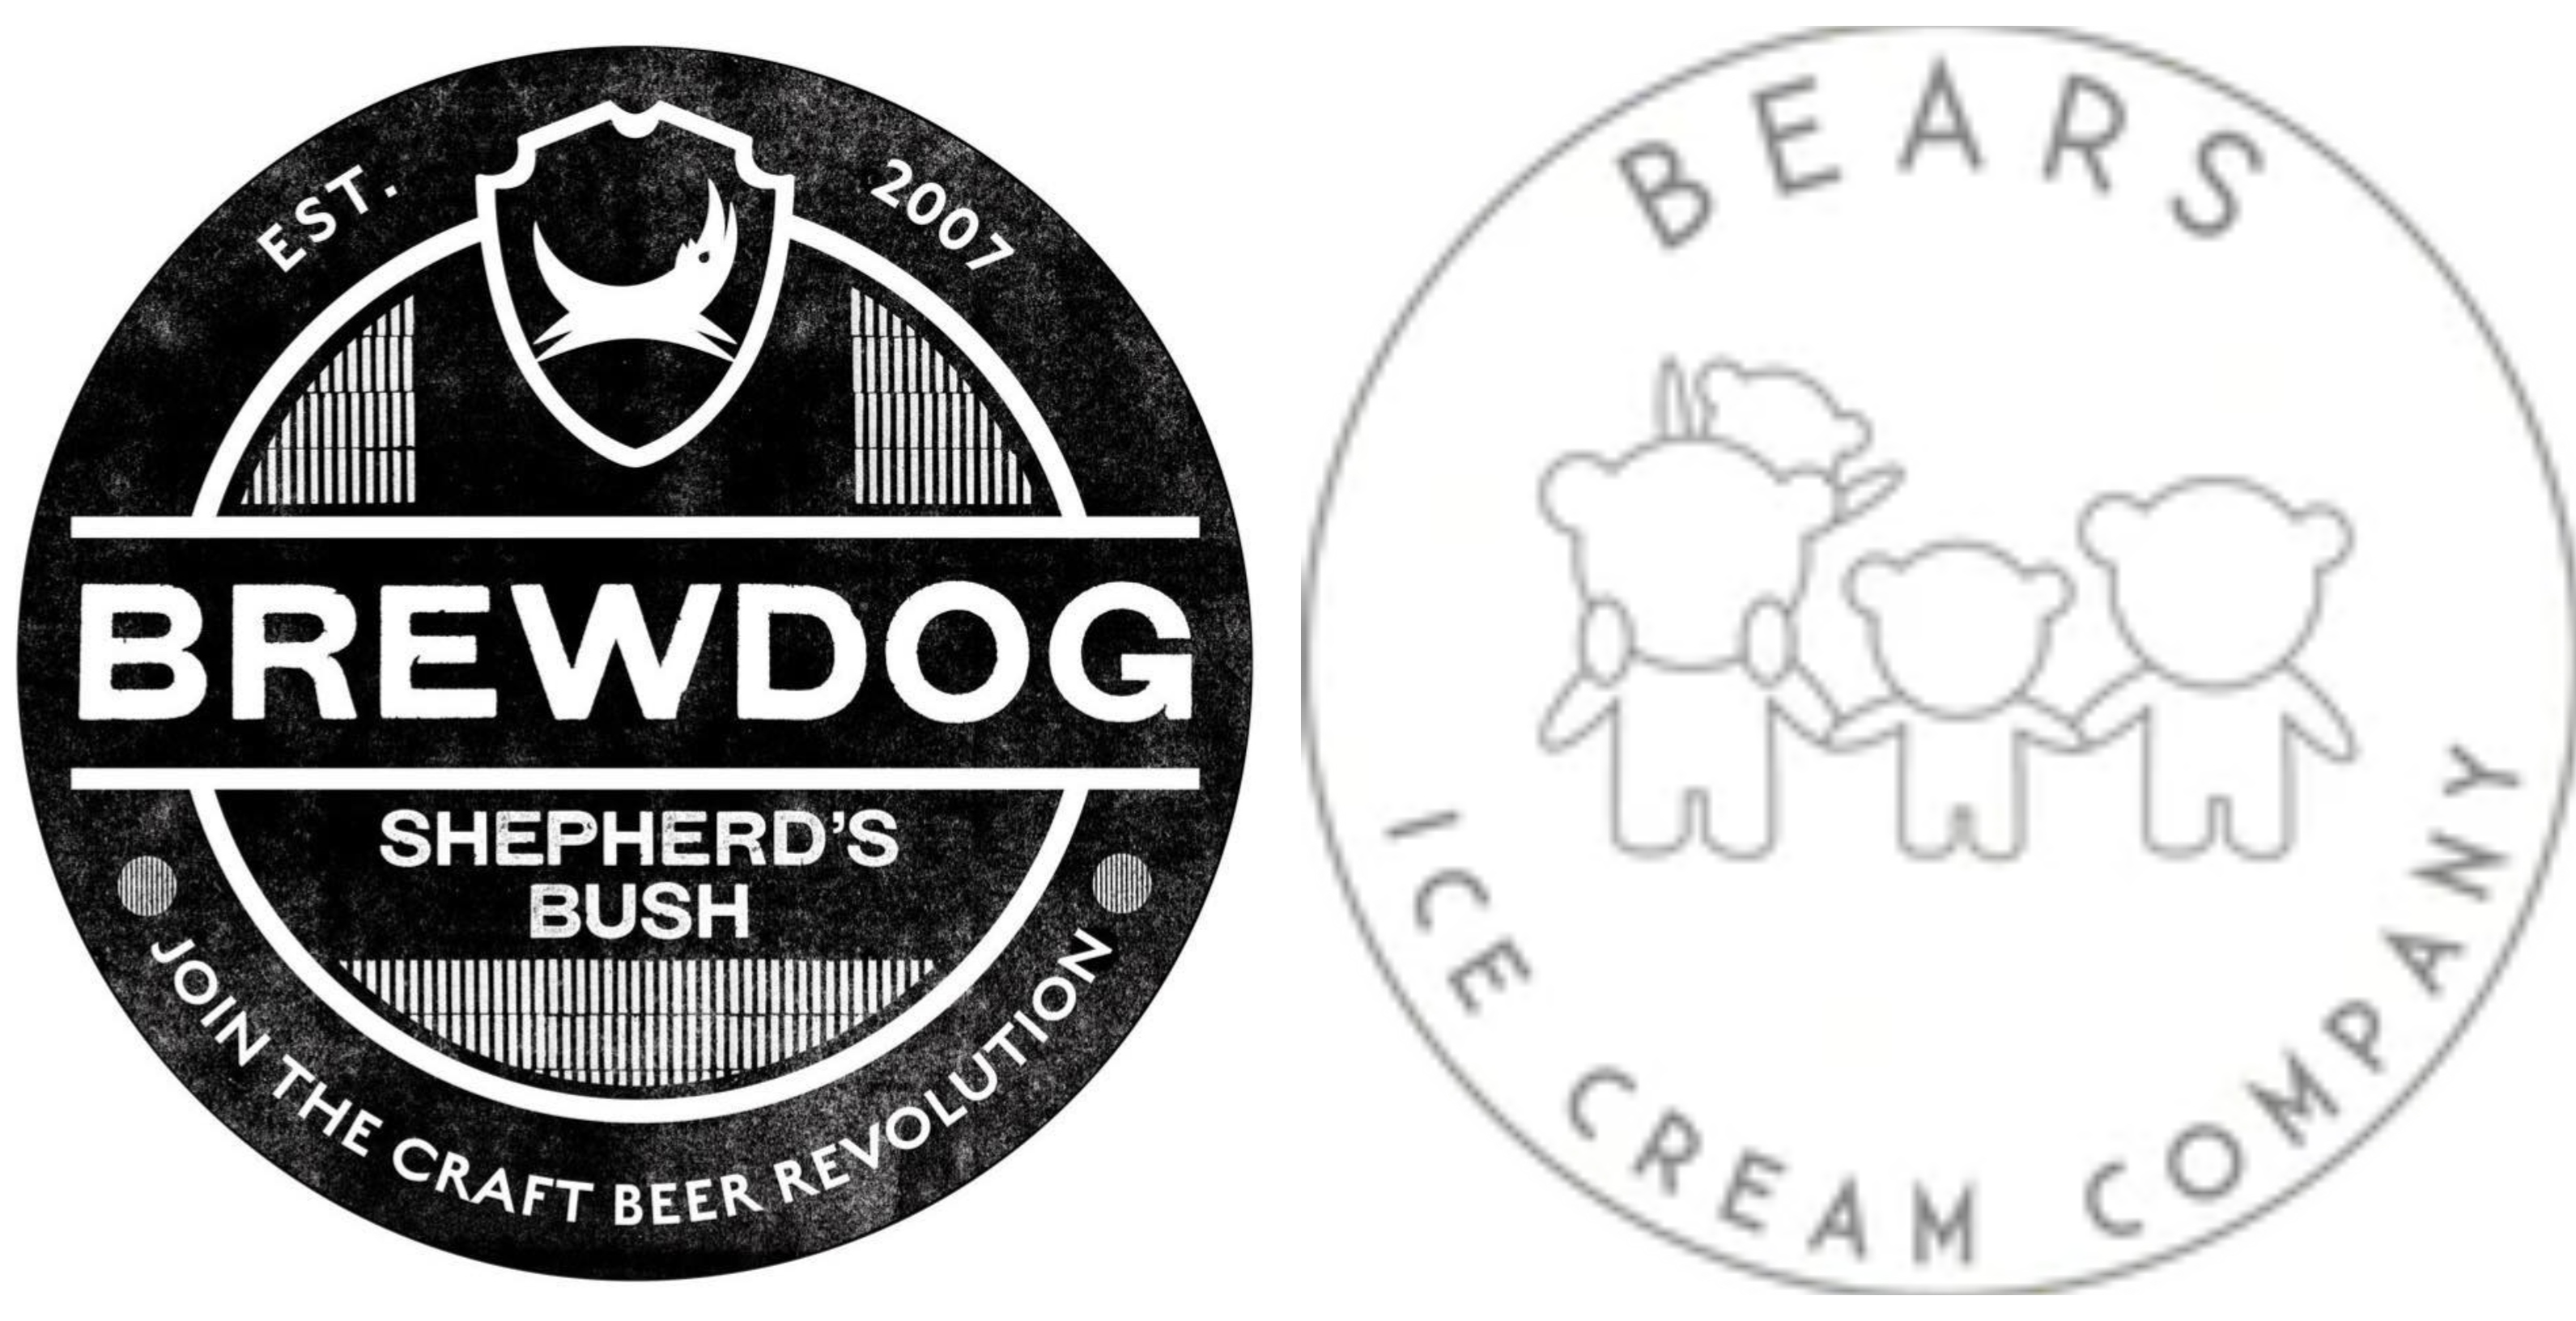 The Bear and The Dog - Beer and Ice Cream Pairing!